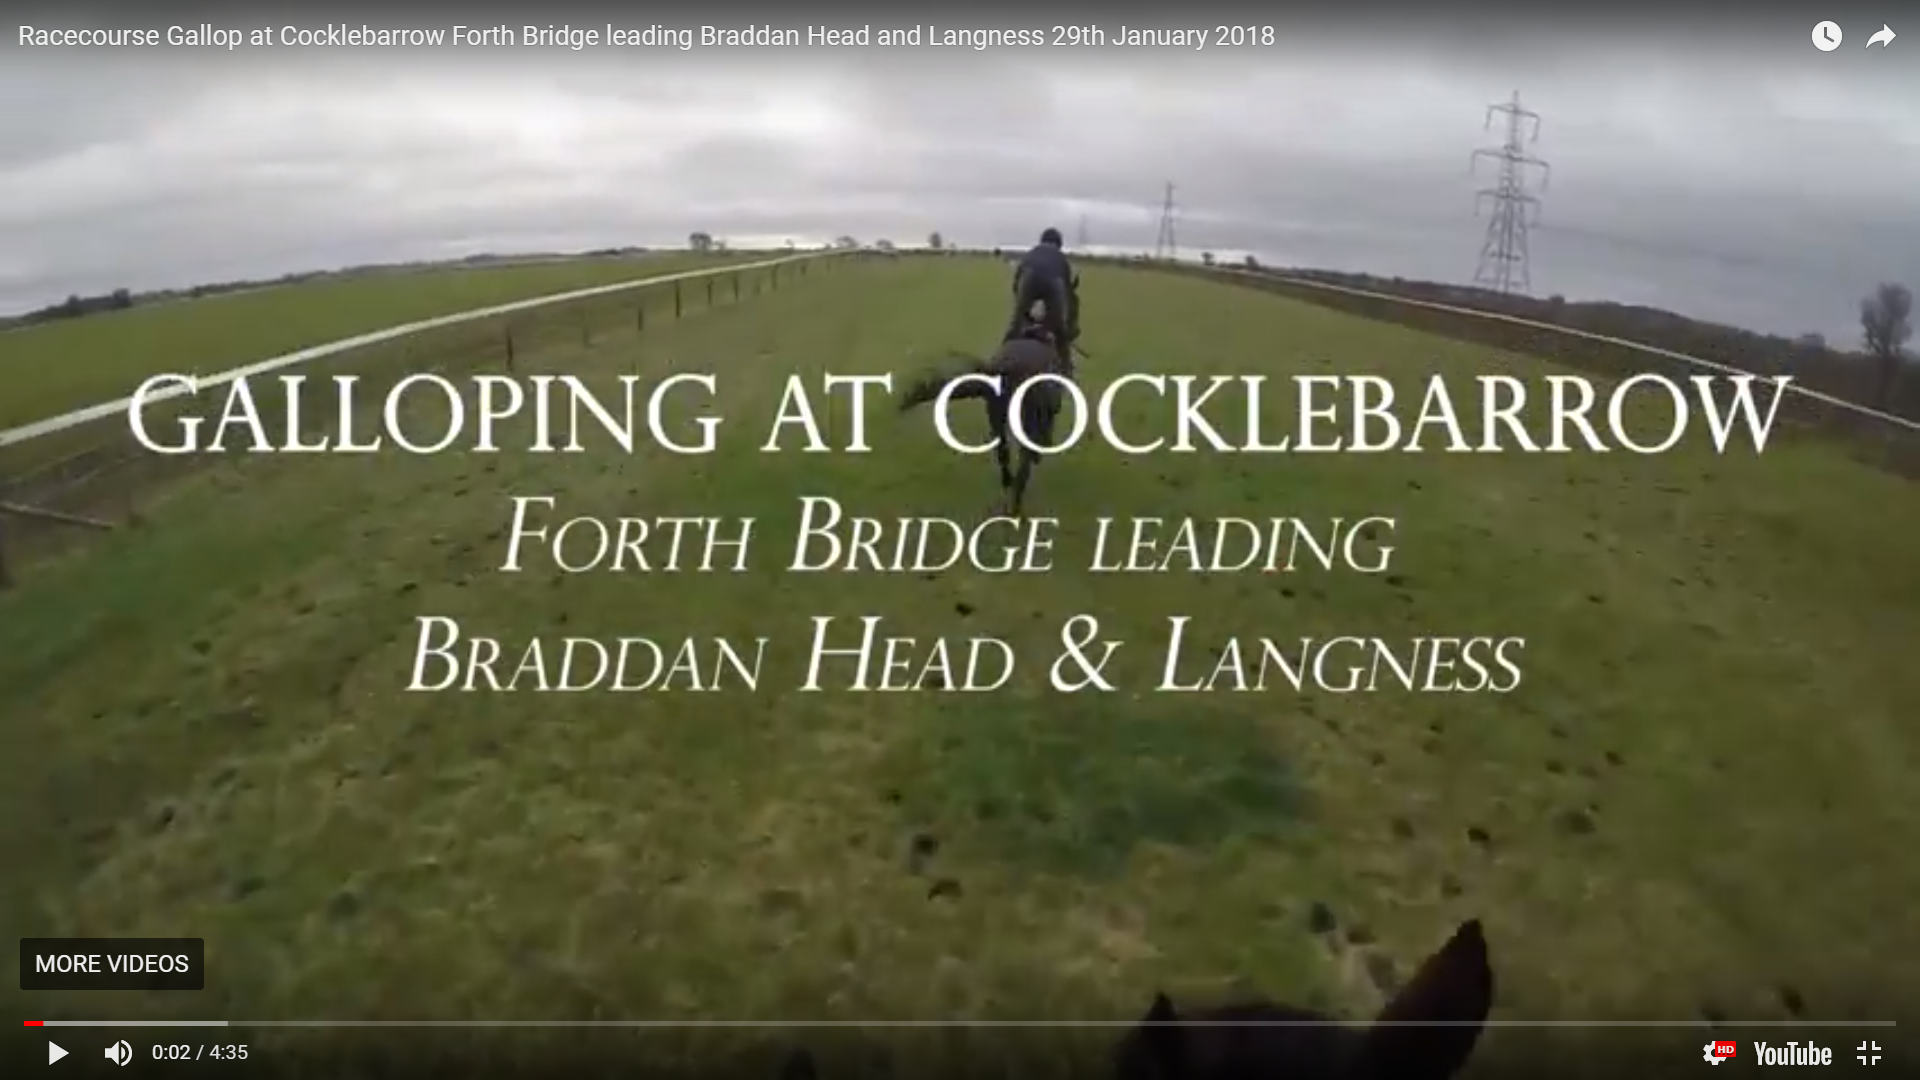 Racecourse Gallop at Cocklebarrow Forth Bridge leading Braddan Head and Langness 29th January 2018